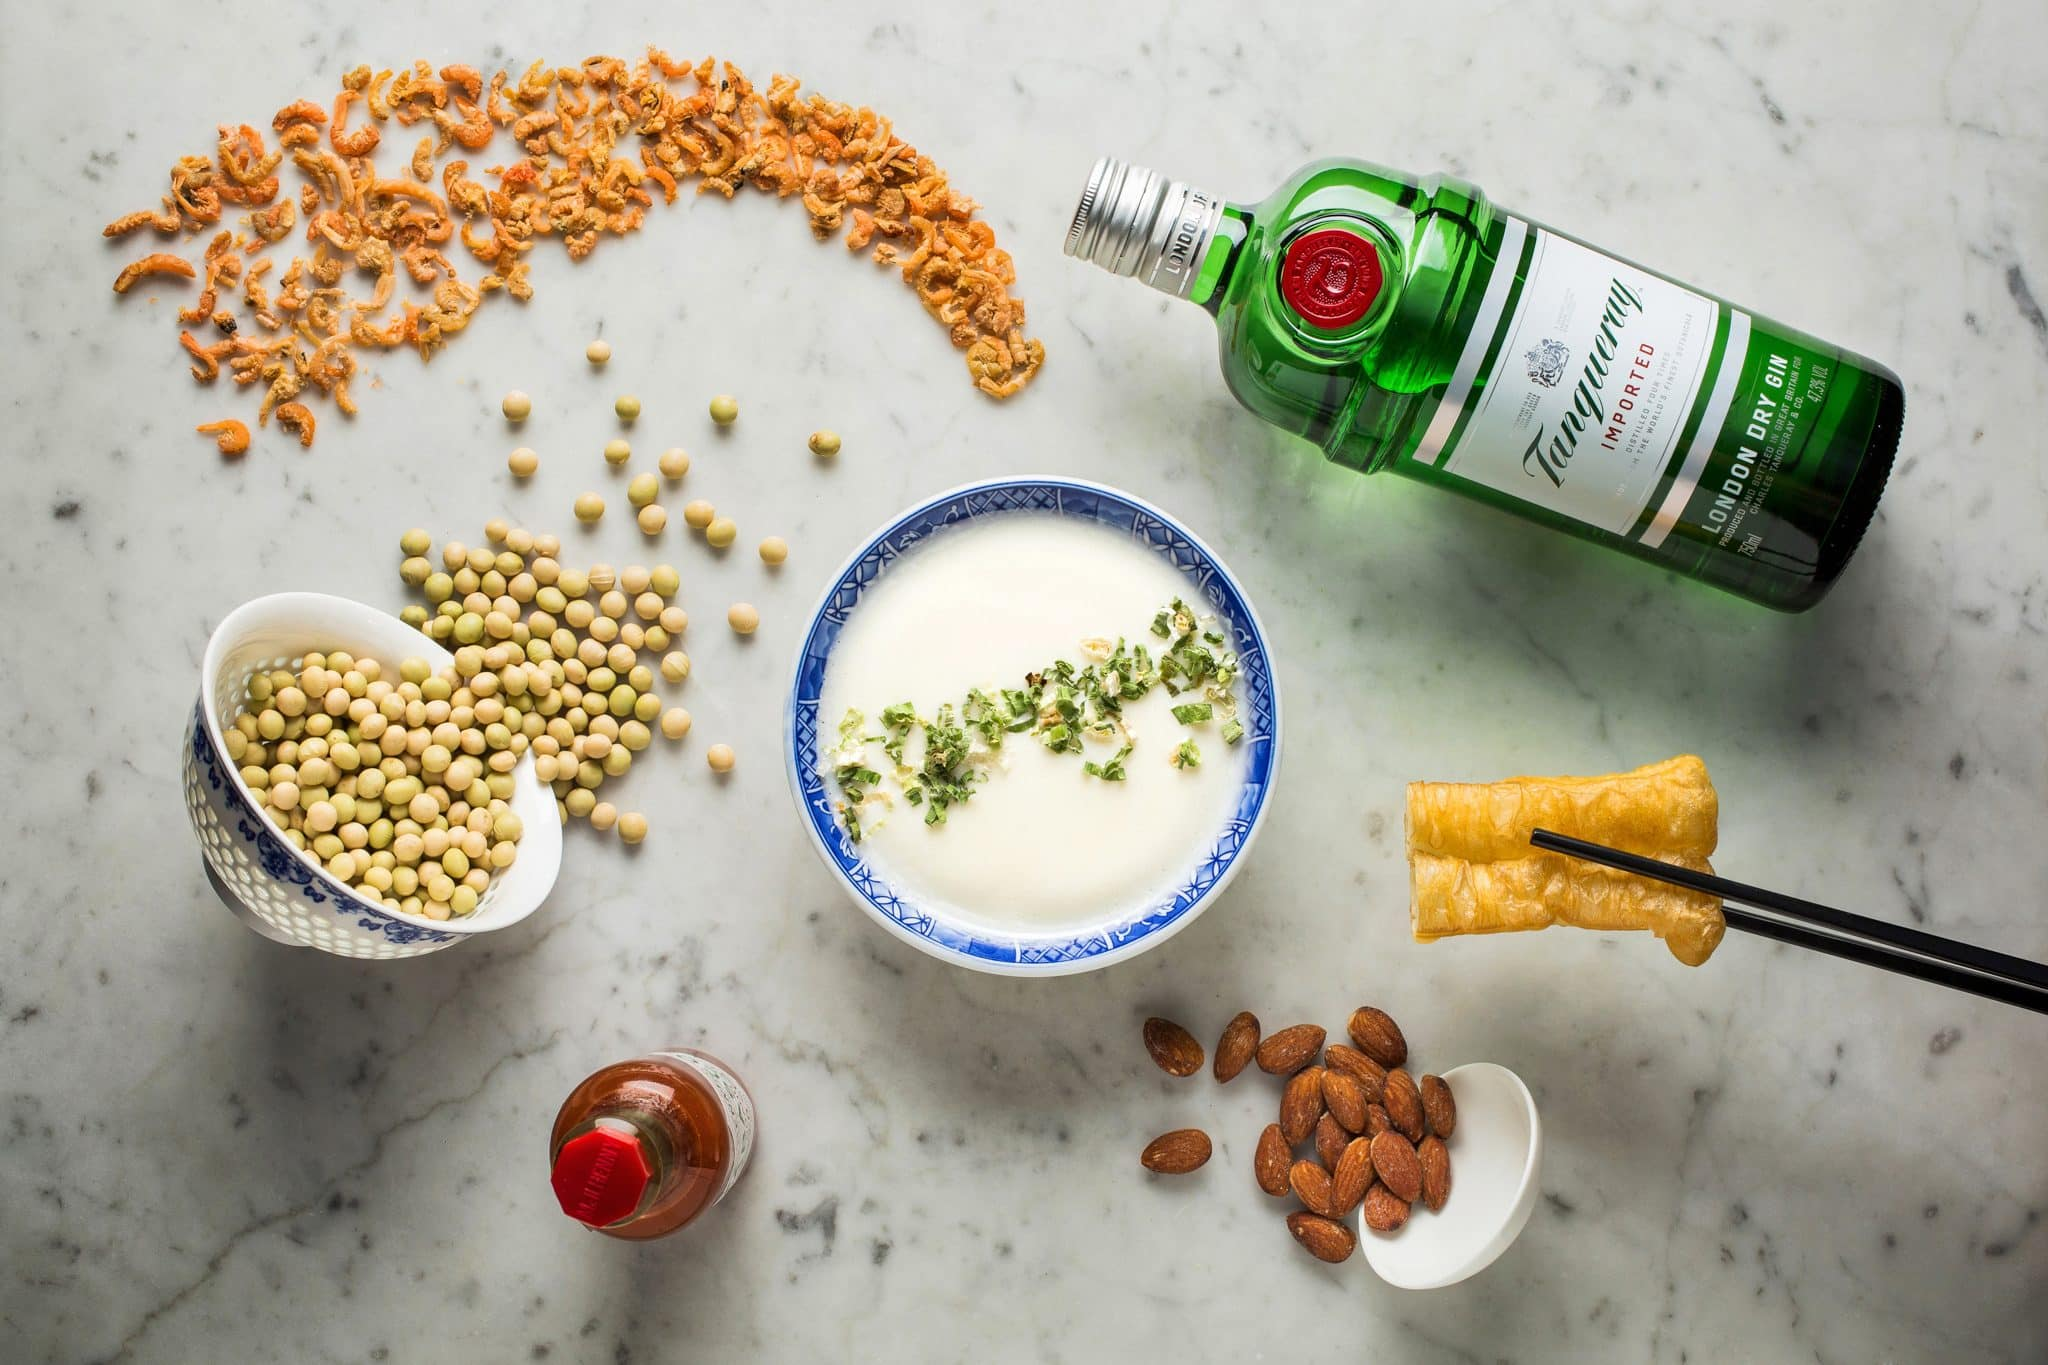 Ingredients as part of a mixology masterclass